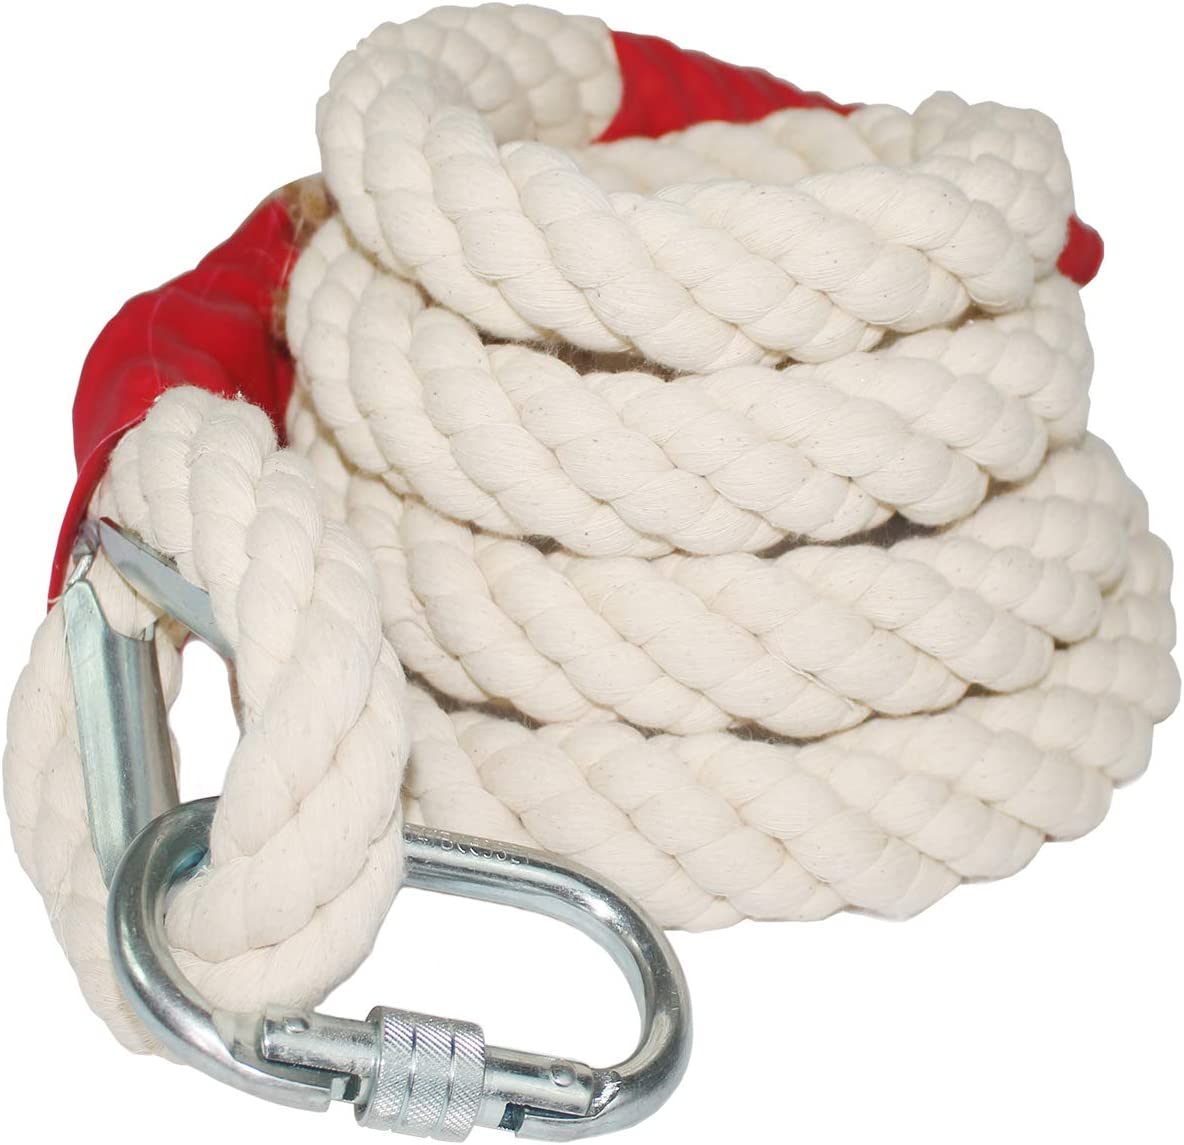 XMYANG Gym Climbing Rope - Heavy Duty Workout Rope for Home - Exercise Training Rope - Kids Tree Climbing Rope